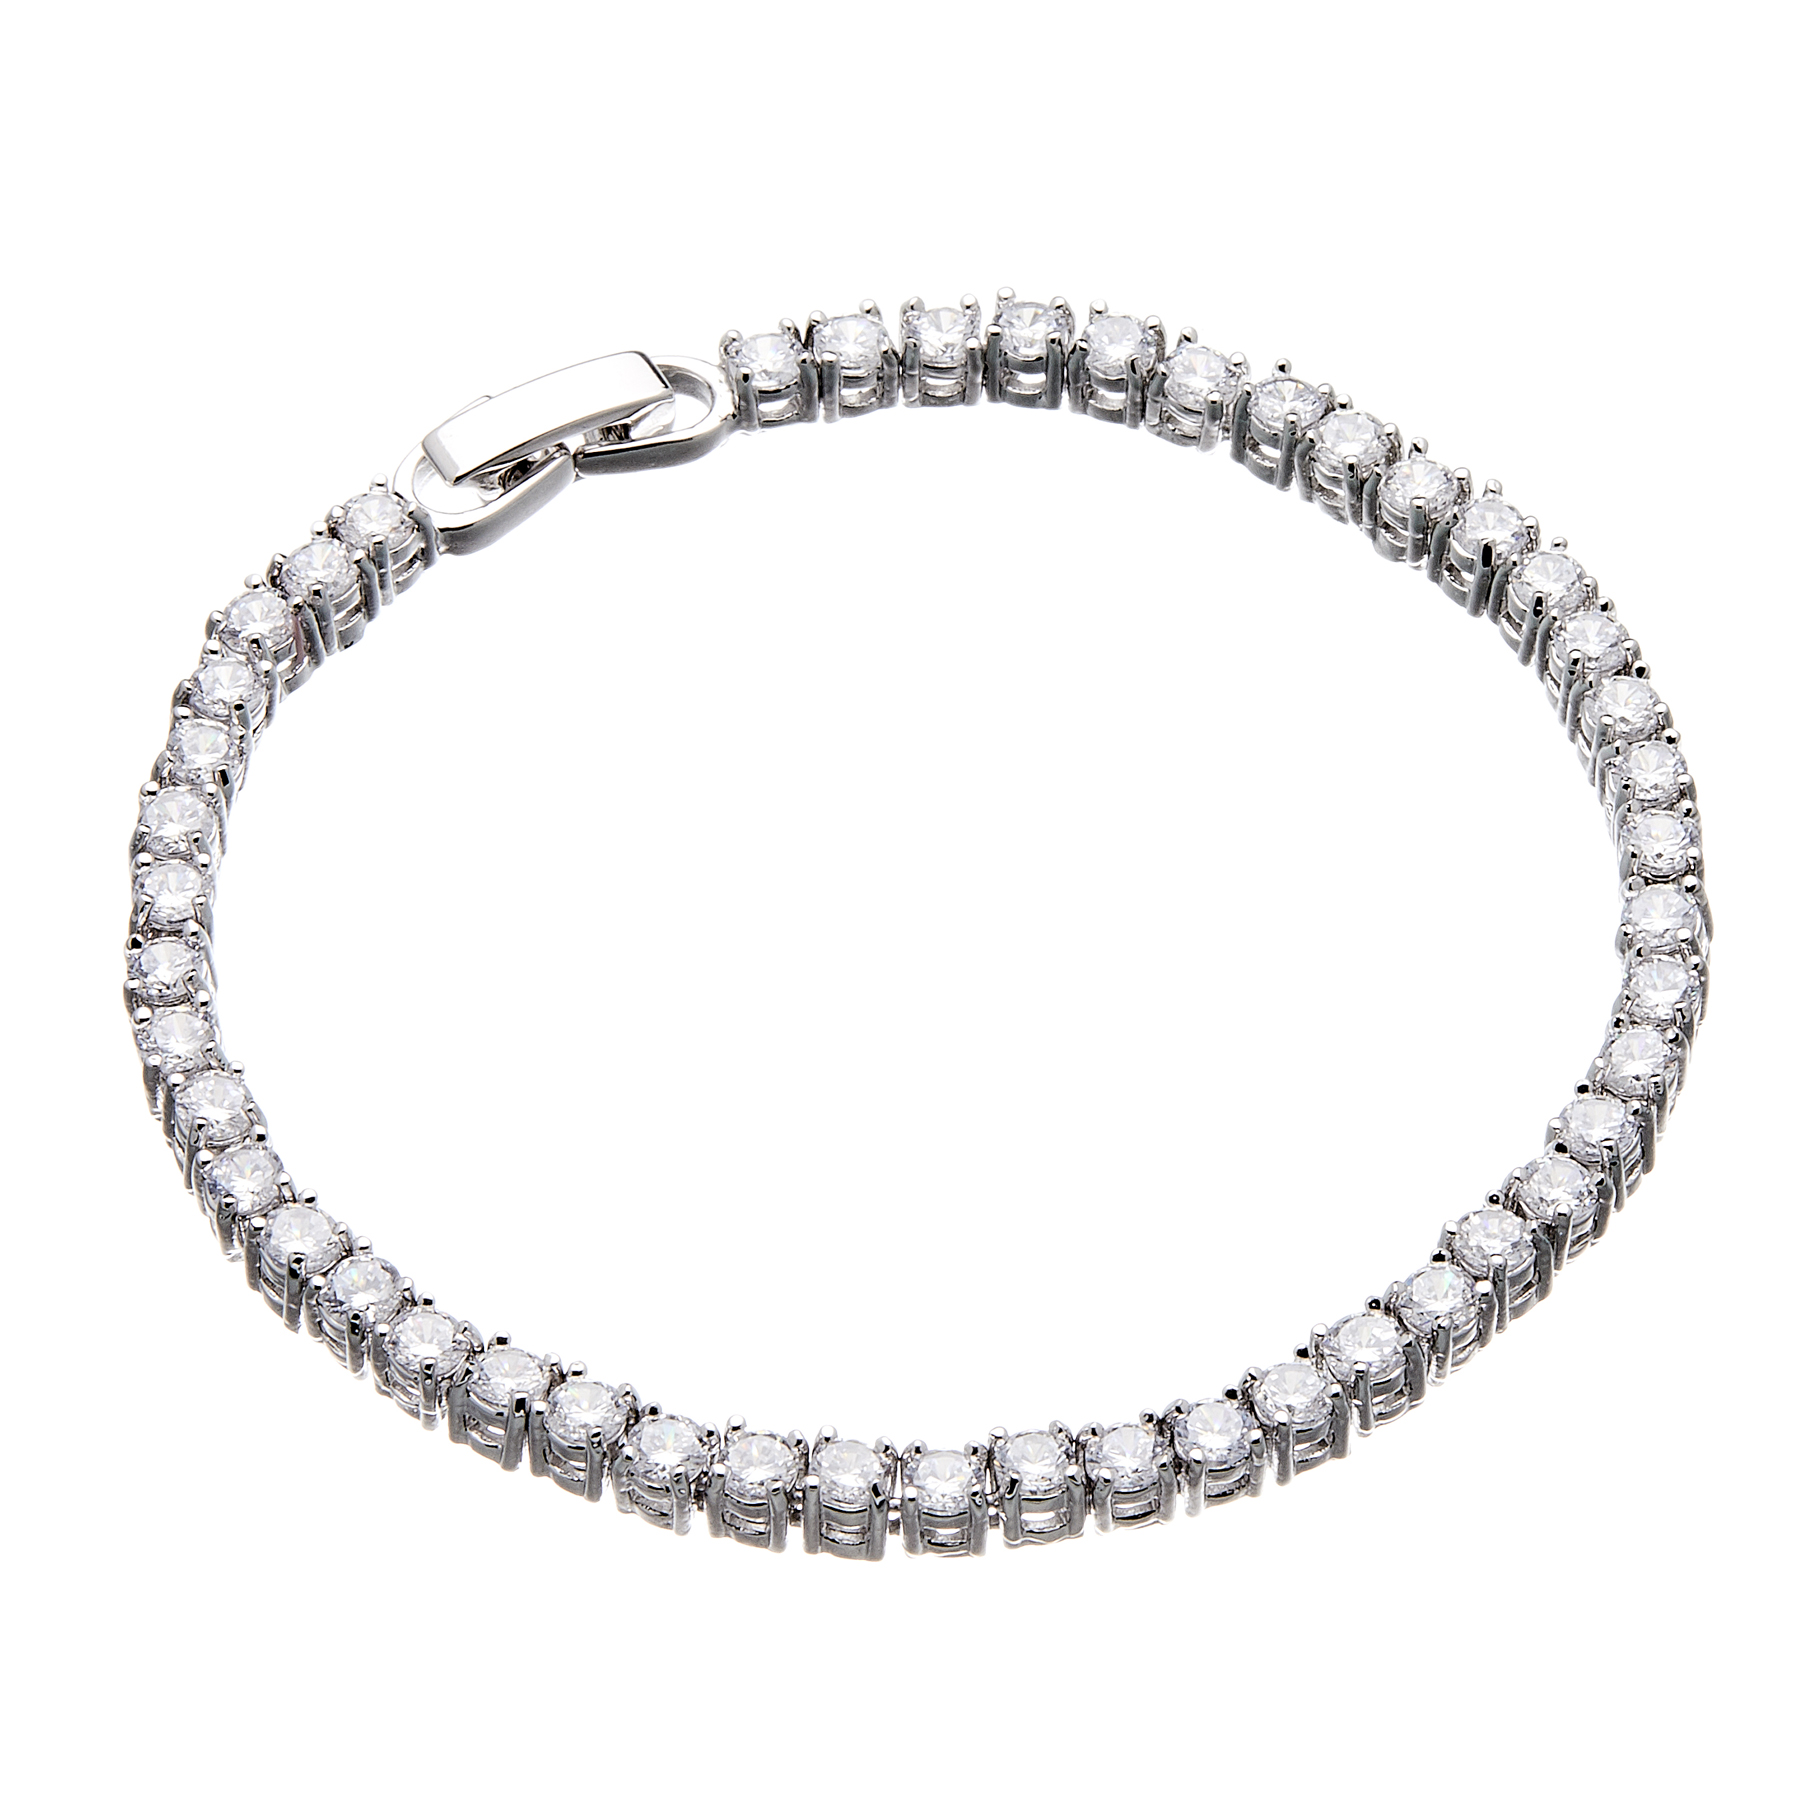 Silver Tennis Bracelet with clear crystals - Nedi